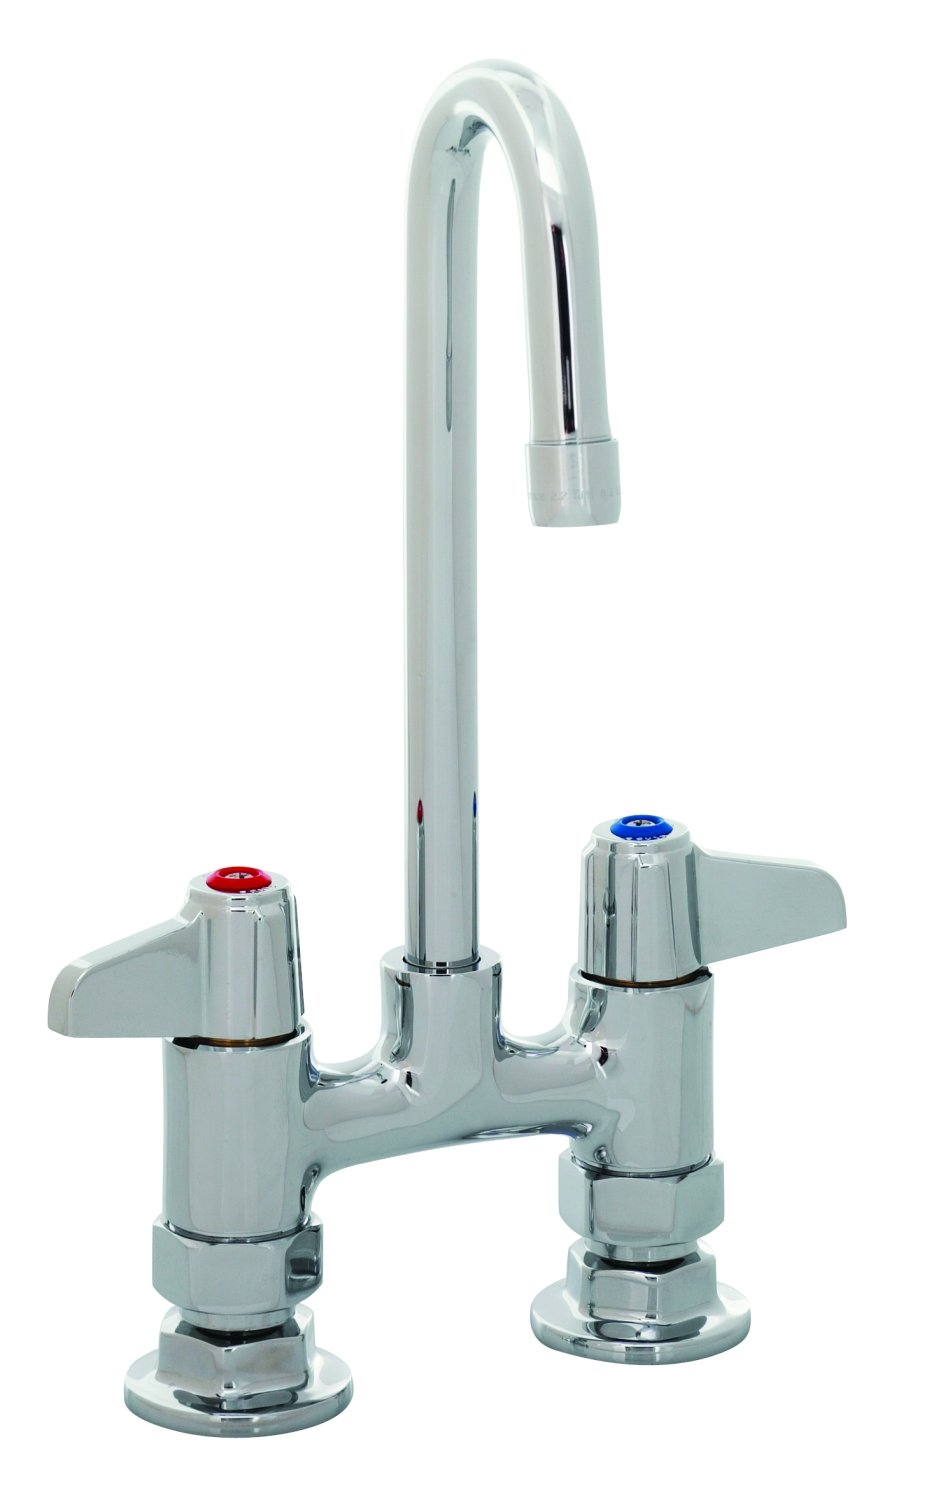 T&S Brass 5F-4DLX03 Deck Mount Faucet with 4-Inch Centers and 3-Inch Rigid Gooseneck by T&S Brass B007L4OPYA